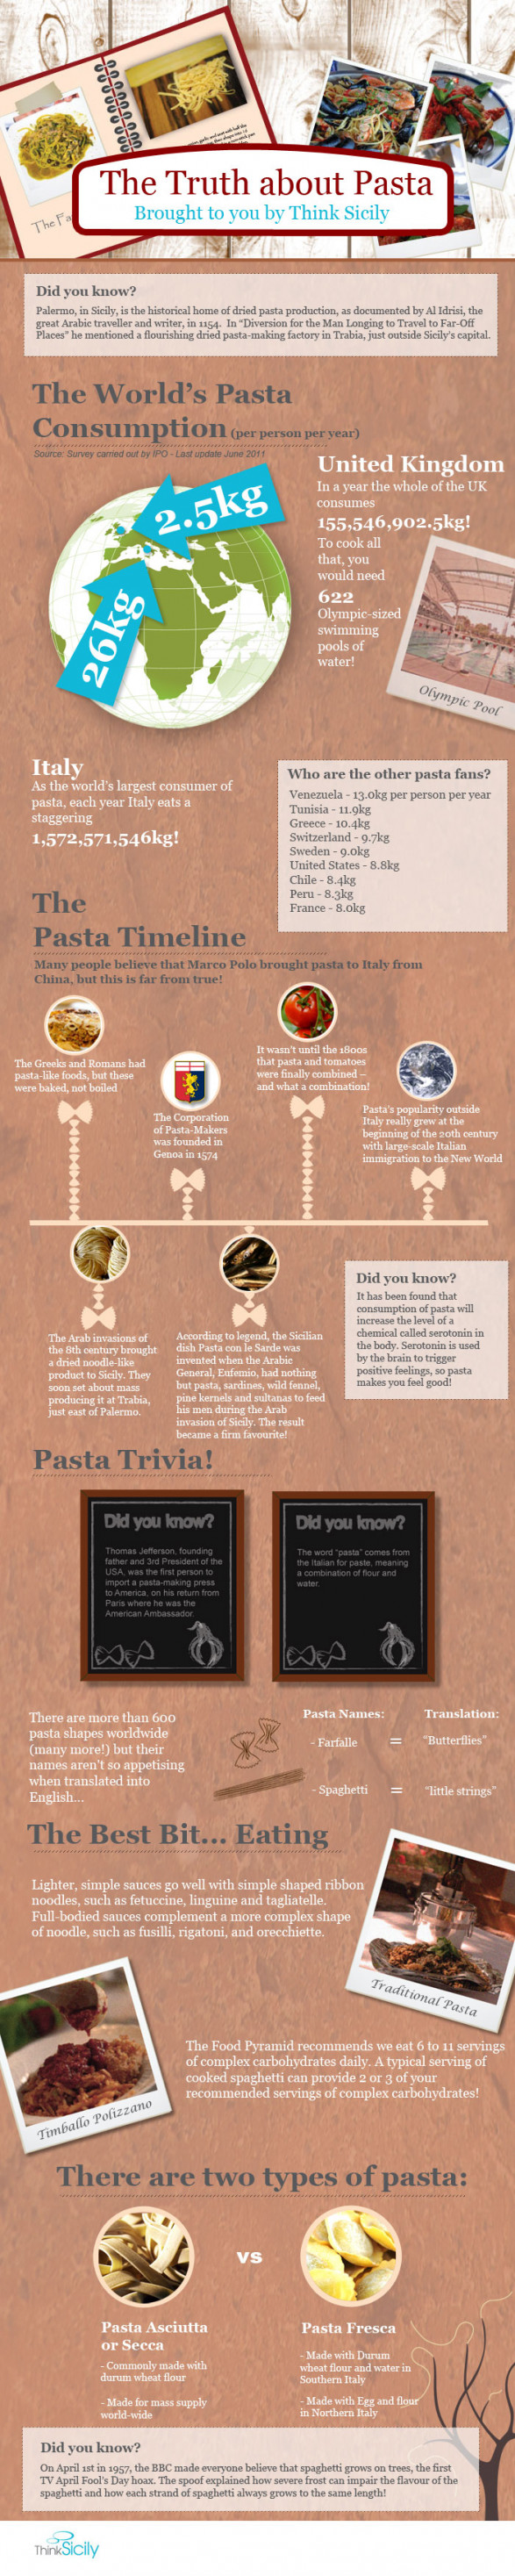 TheTruthAboutPasta 4fb3c0ce4aa98 w587 The Truth About Pasta (Infographic)